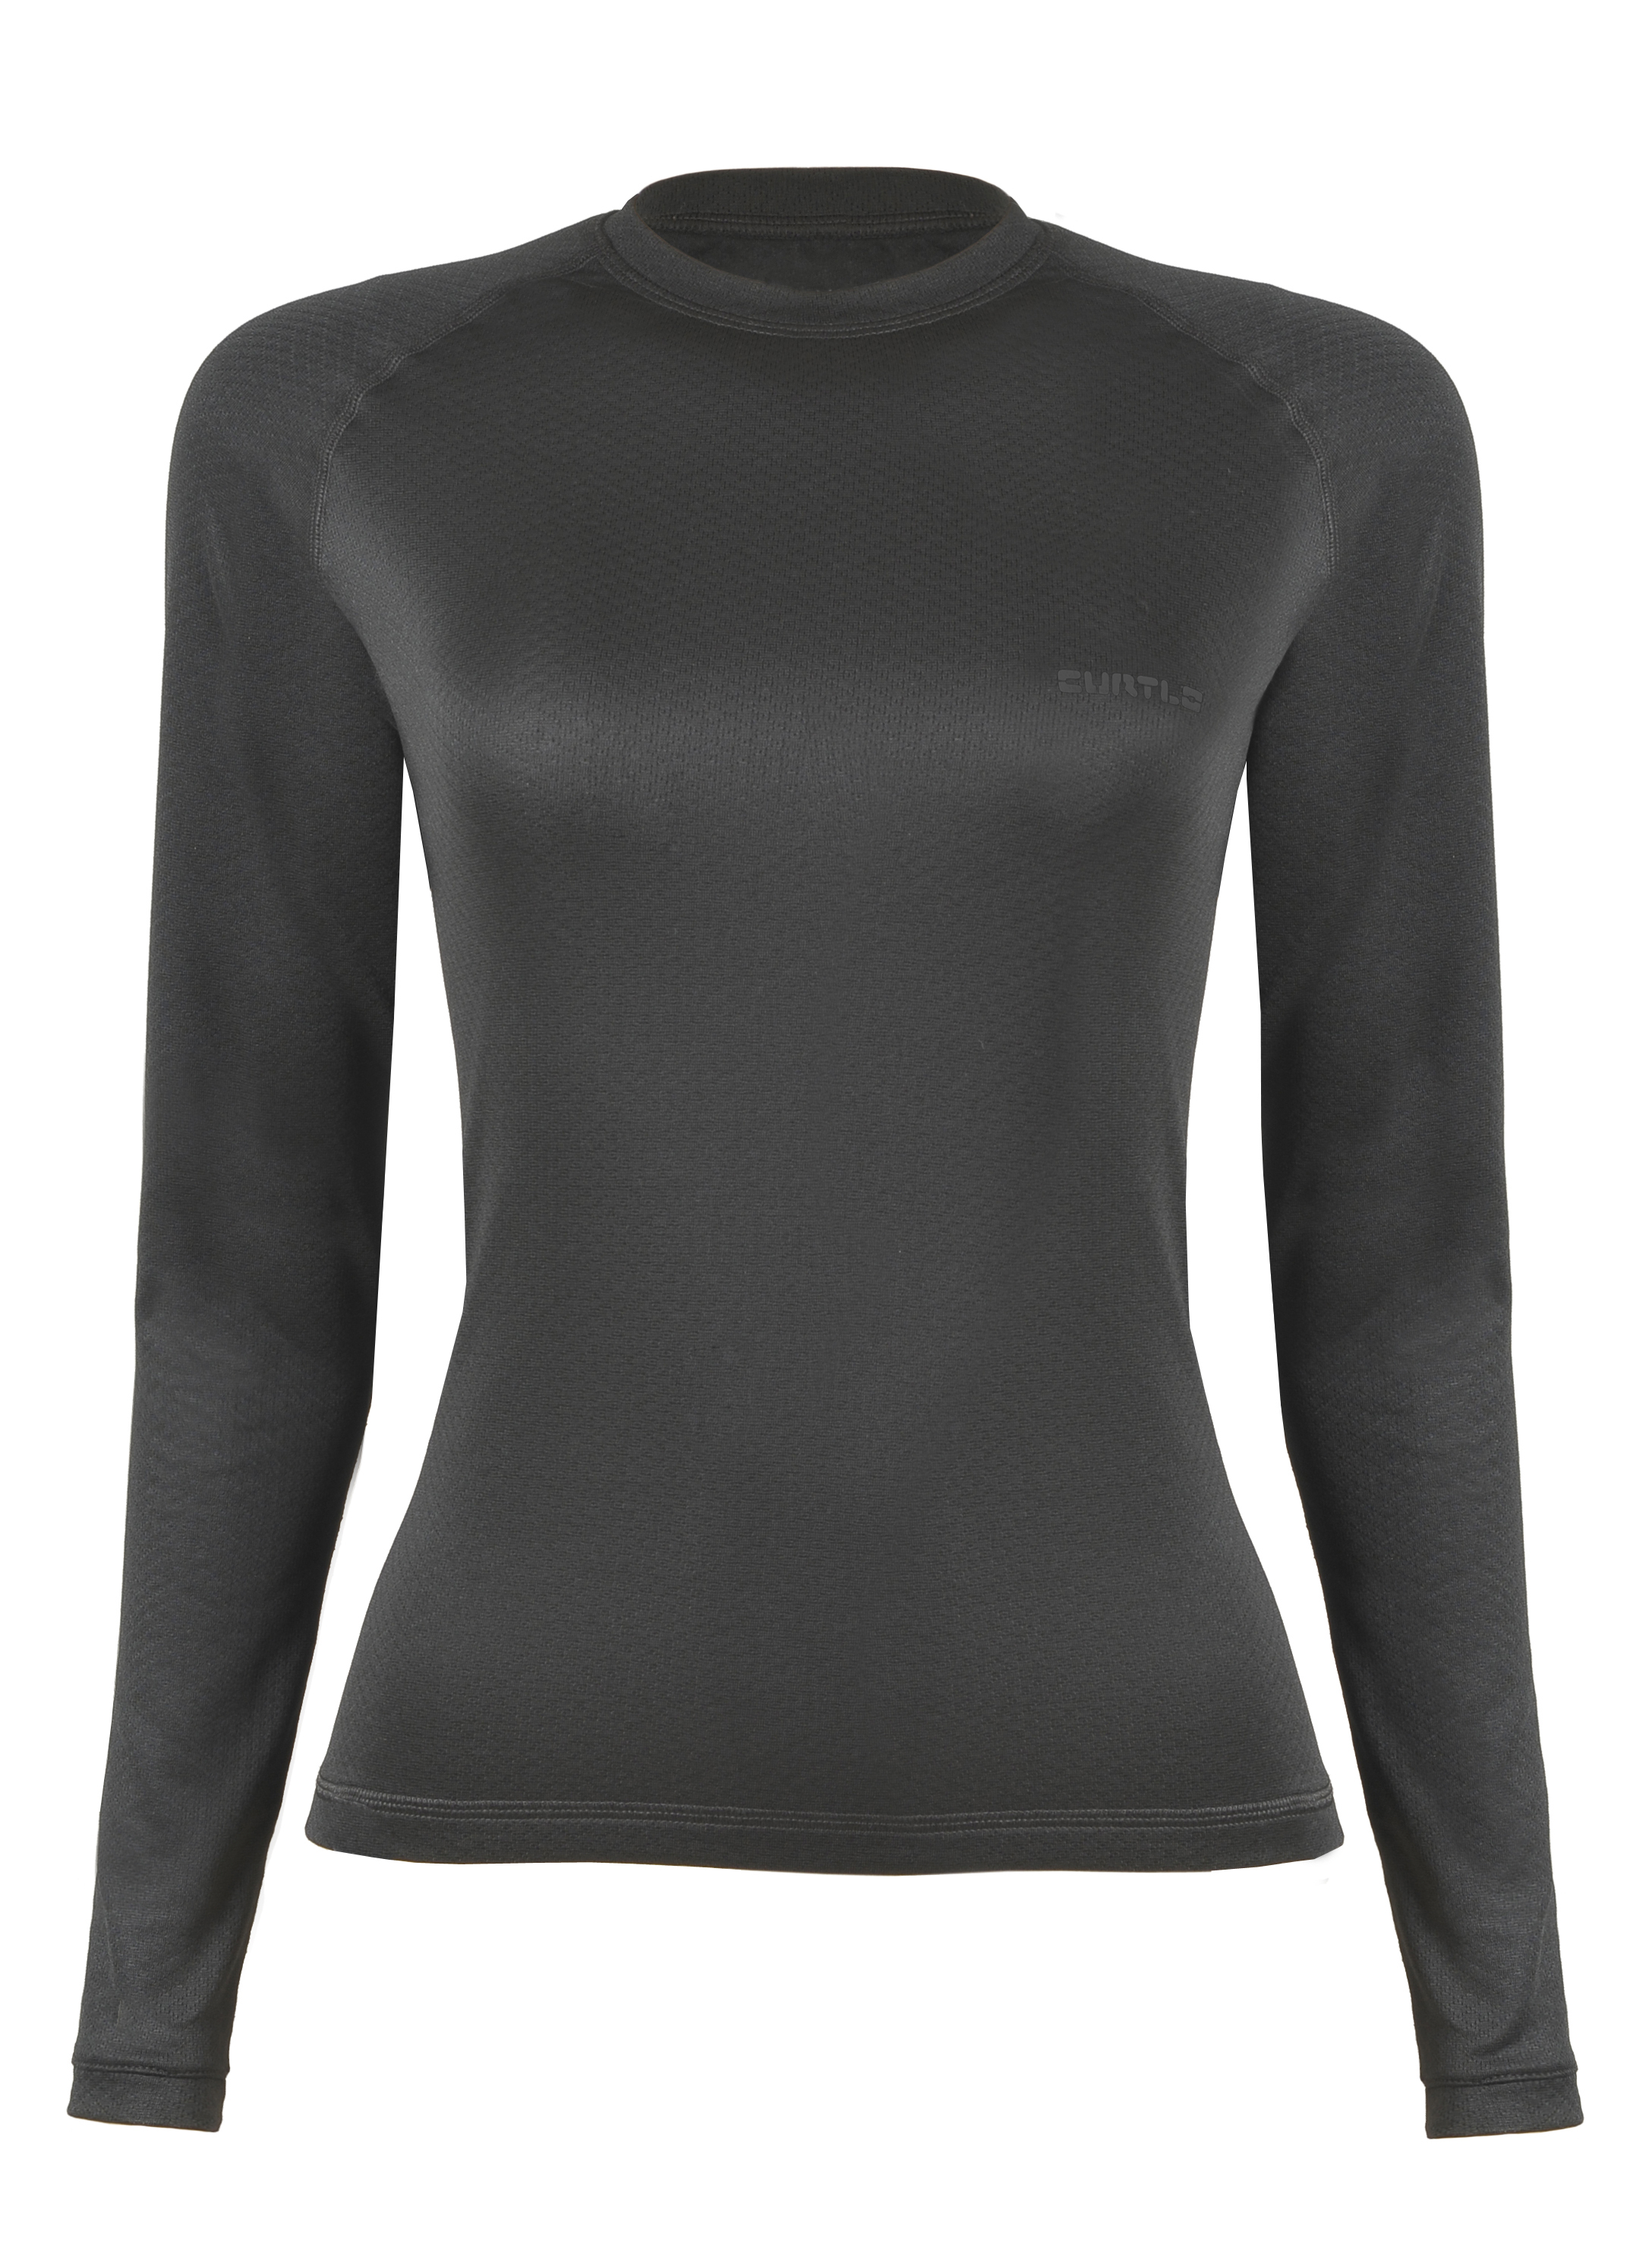 Blusa T Shirt Thermo Skin VTS 052 Lady Curtlo